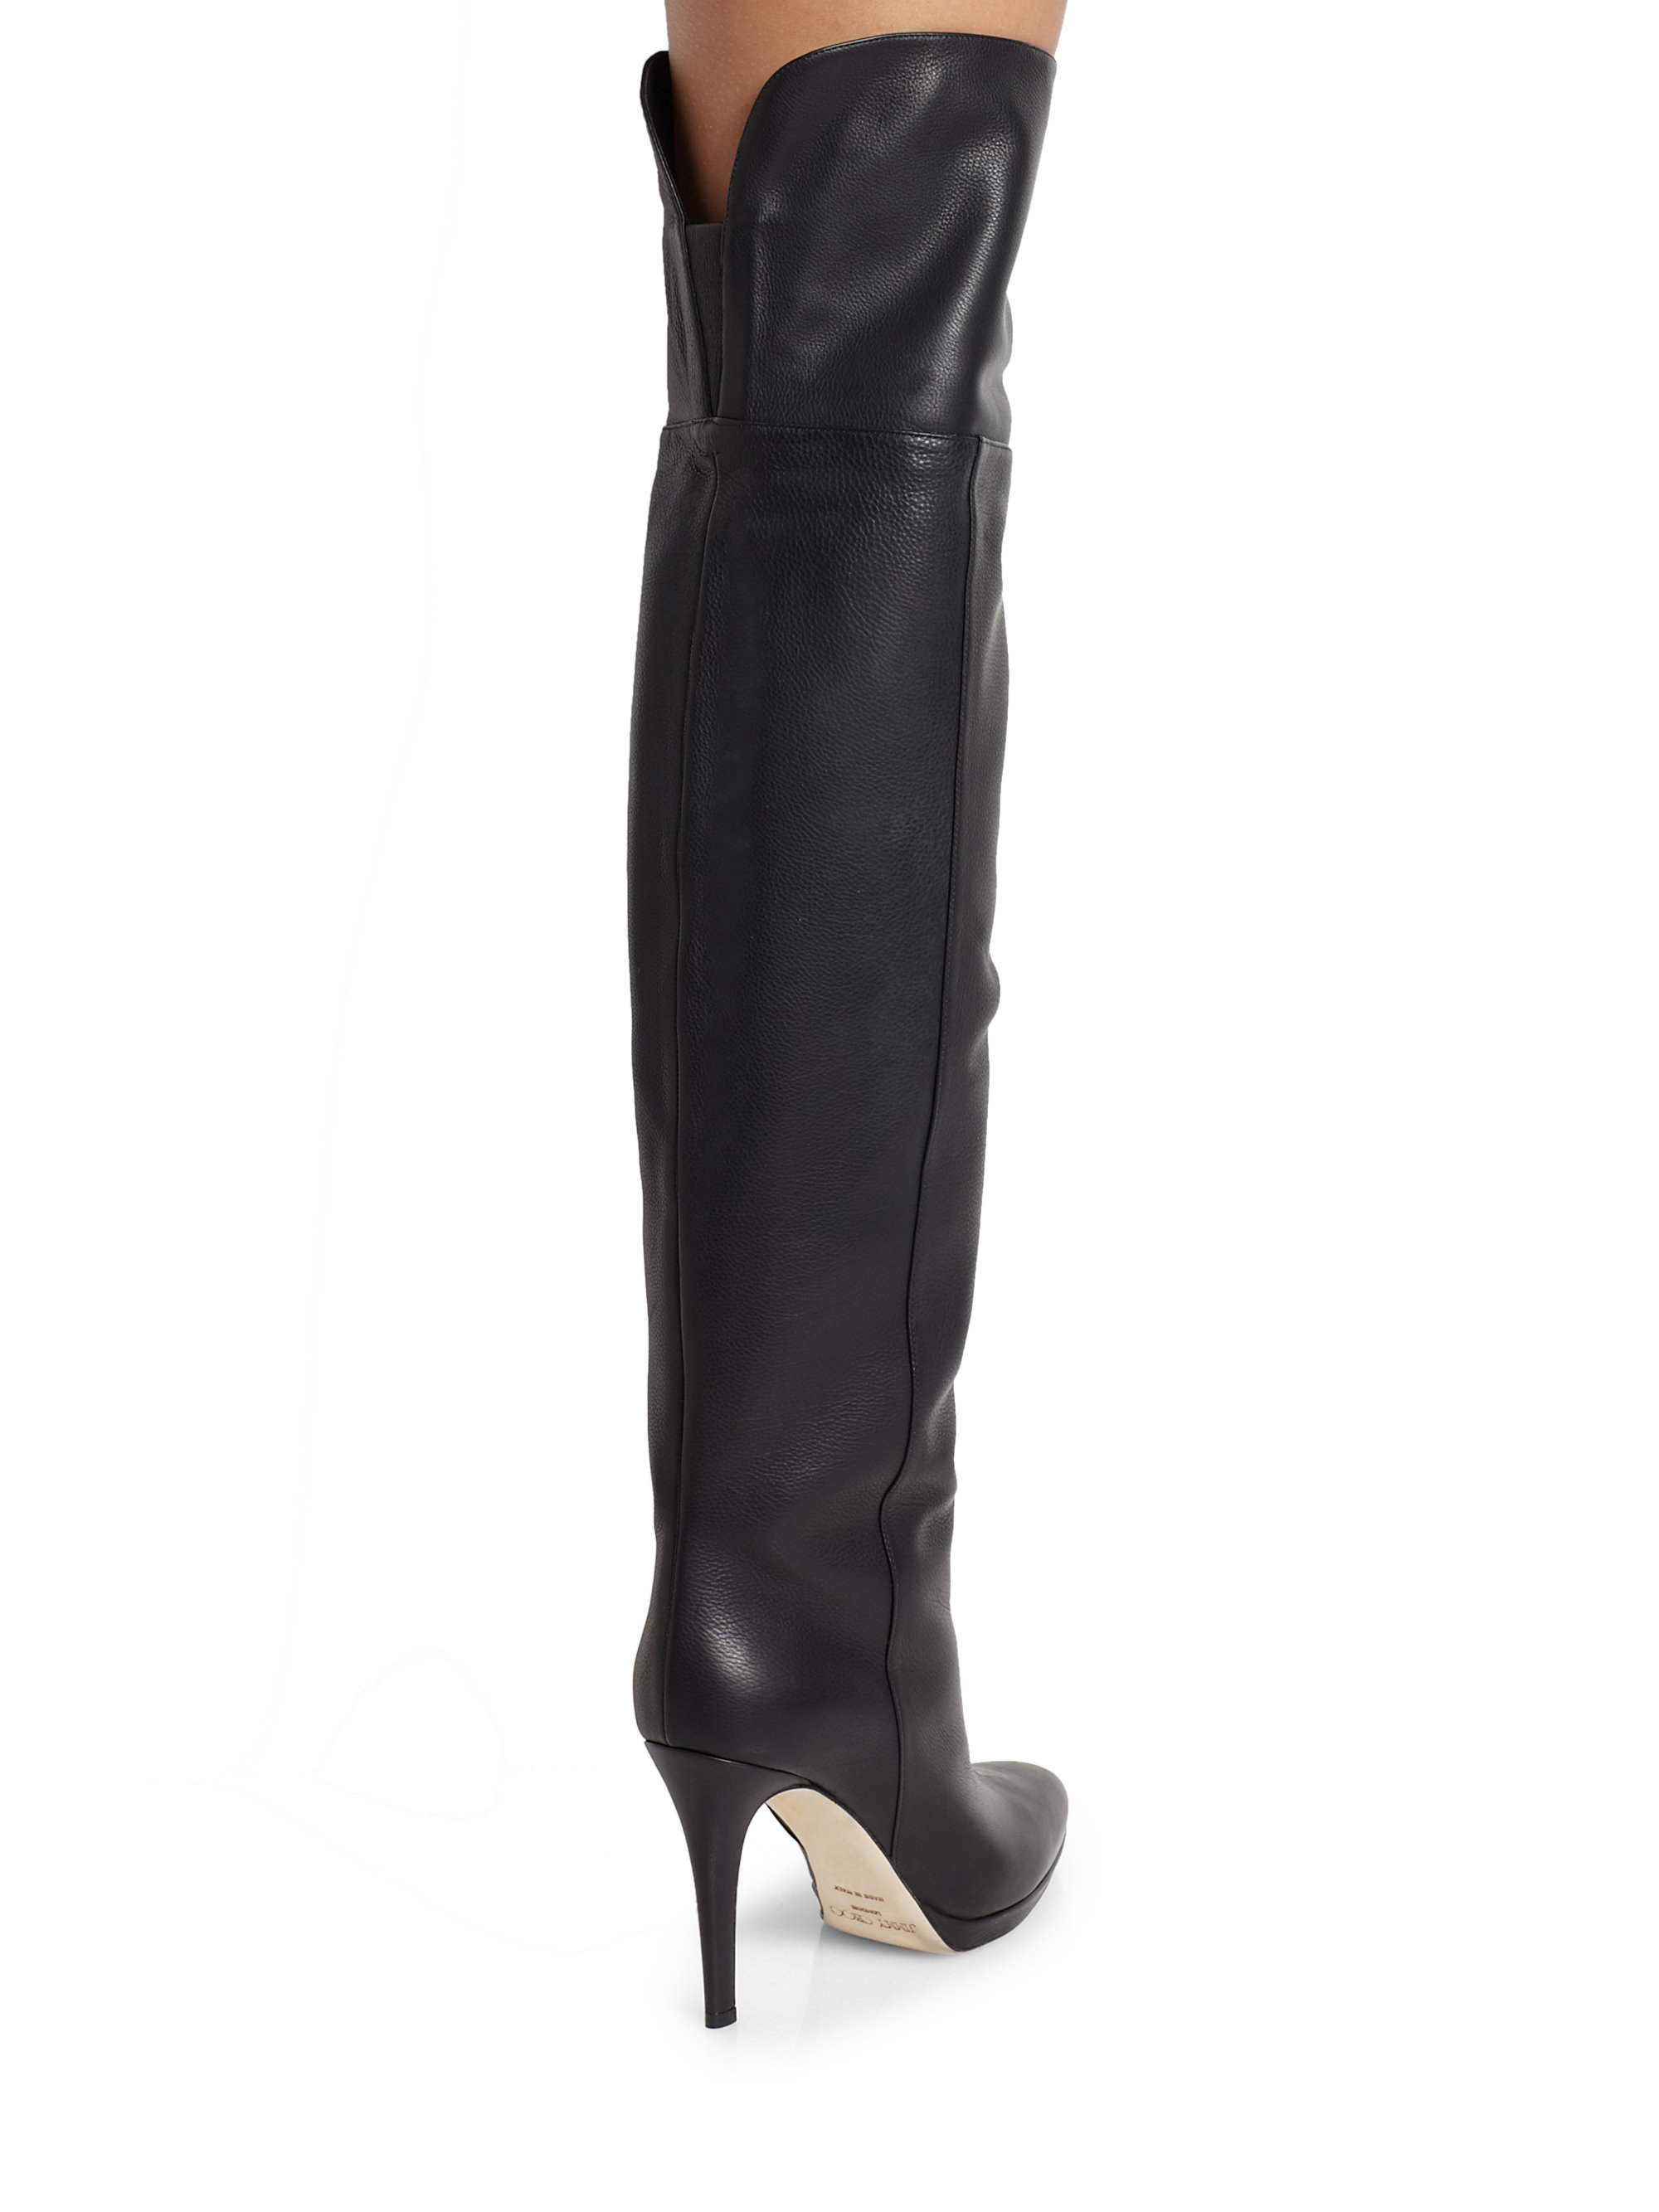 c21a0a43ab3 ... Lyst - Jimmy Choo Gypsy Leather Over-the-knee Boots in Black ...